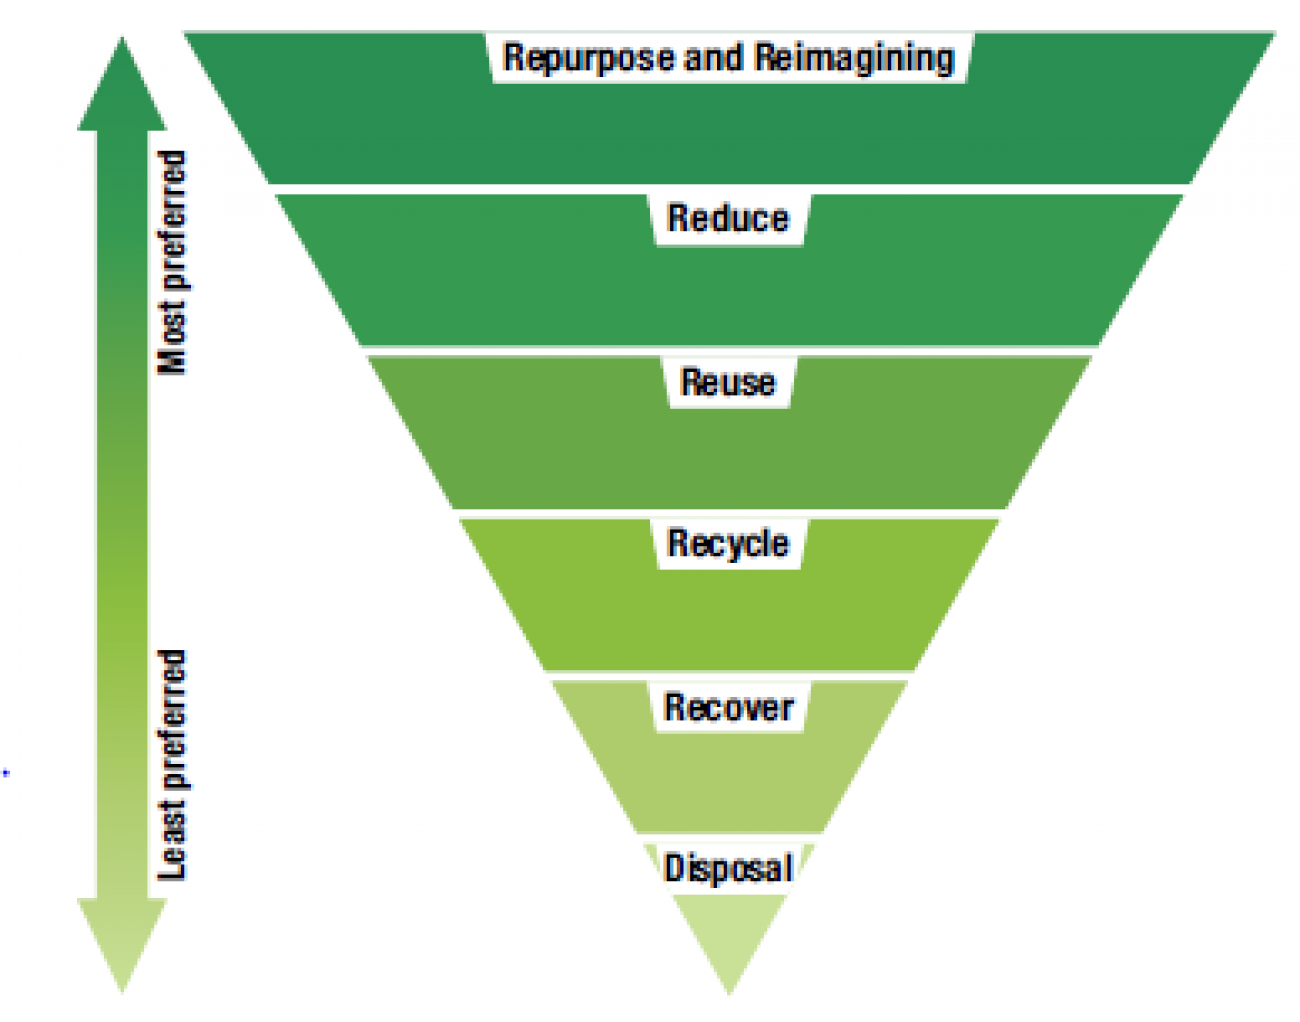 Hierarchy of actions that can be taken to address the impacts of marine debris on the Reef